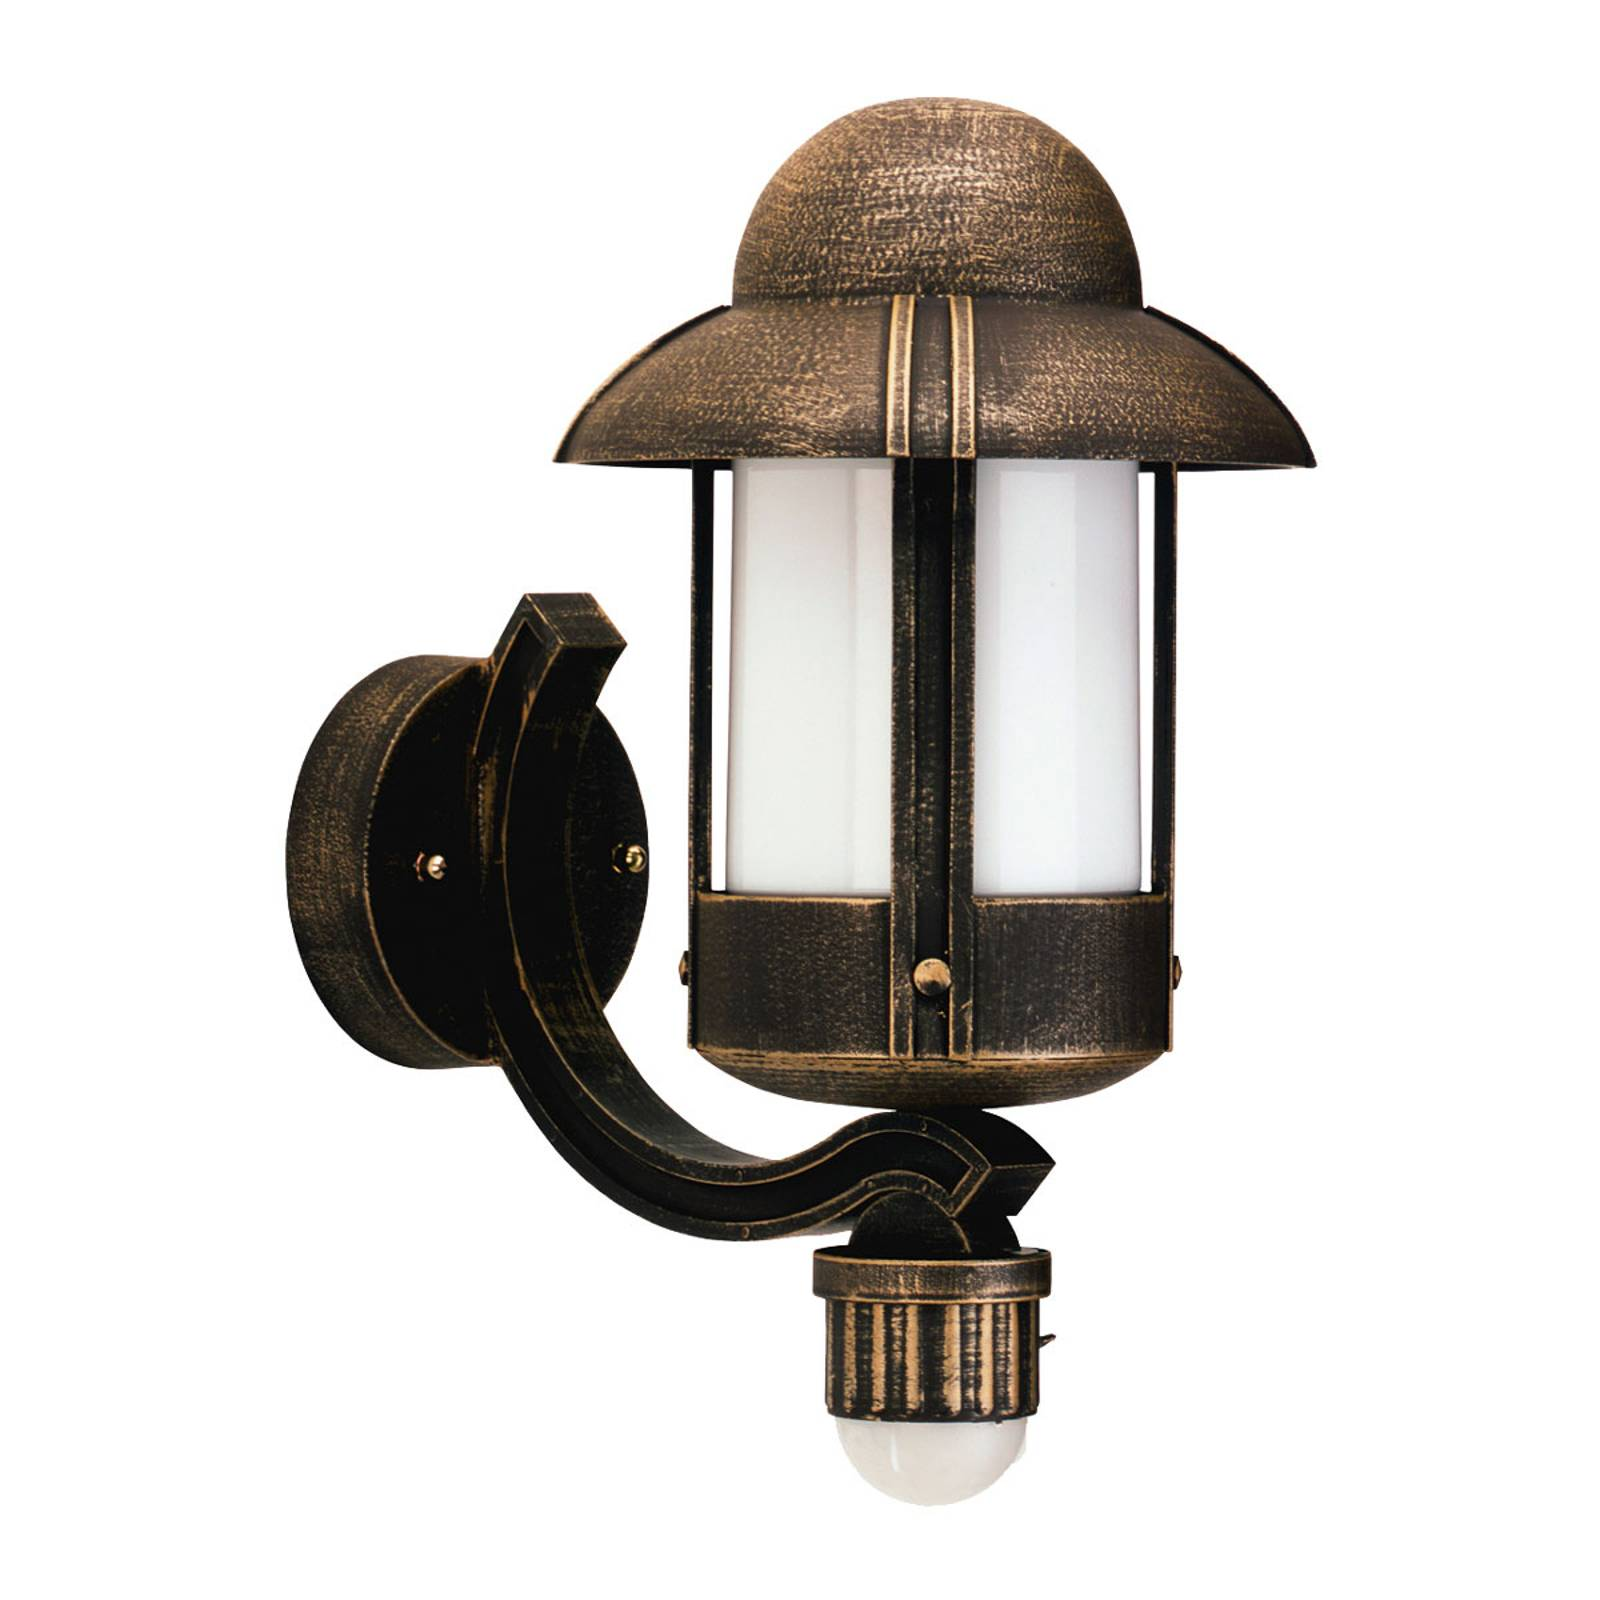 Country-style Dorothee outdoor wall light, brown from Albert Leuchten